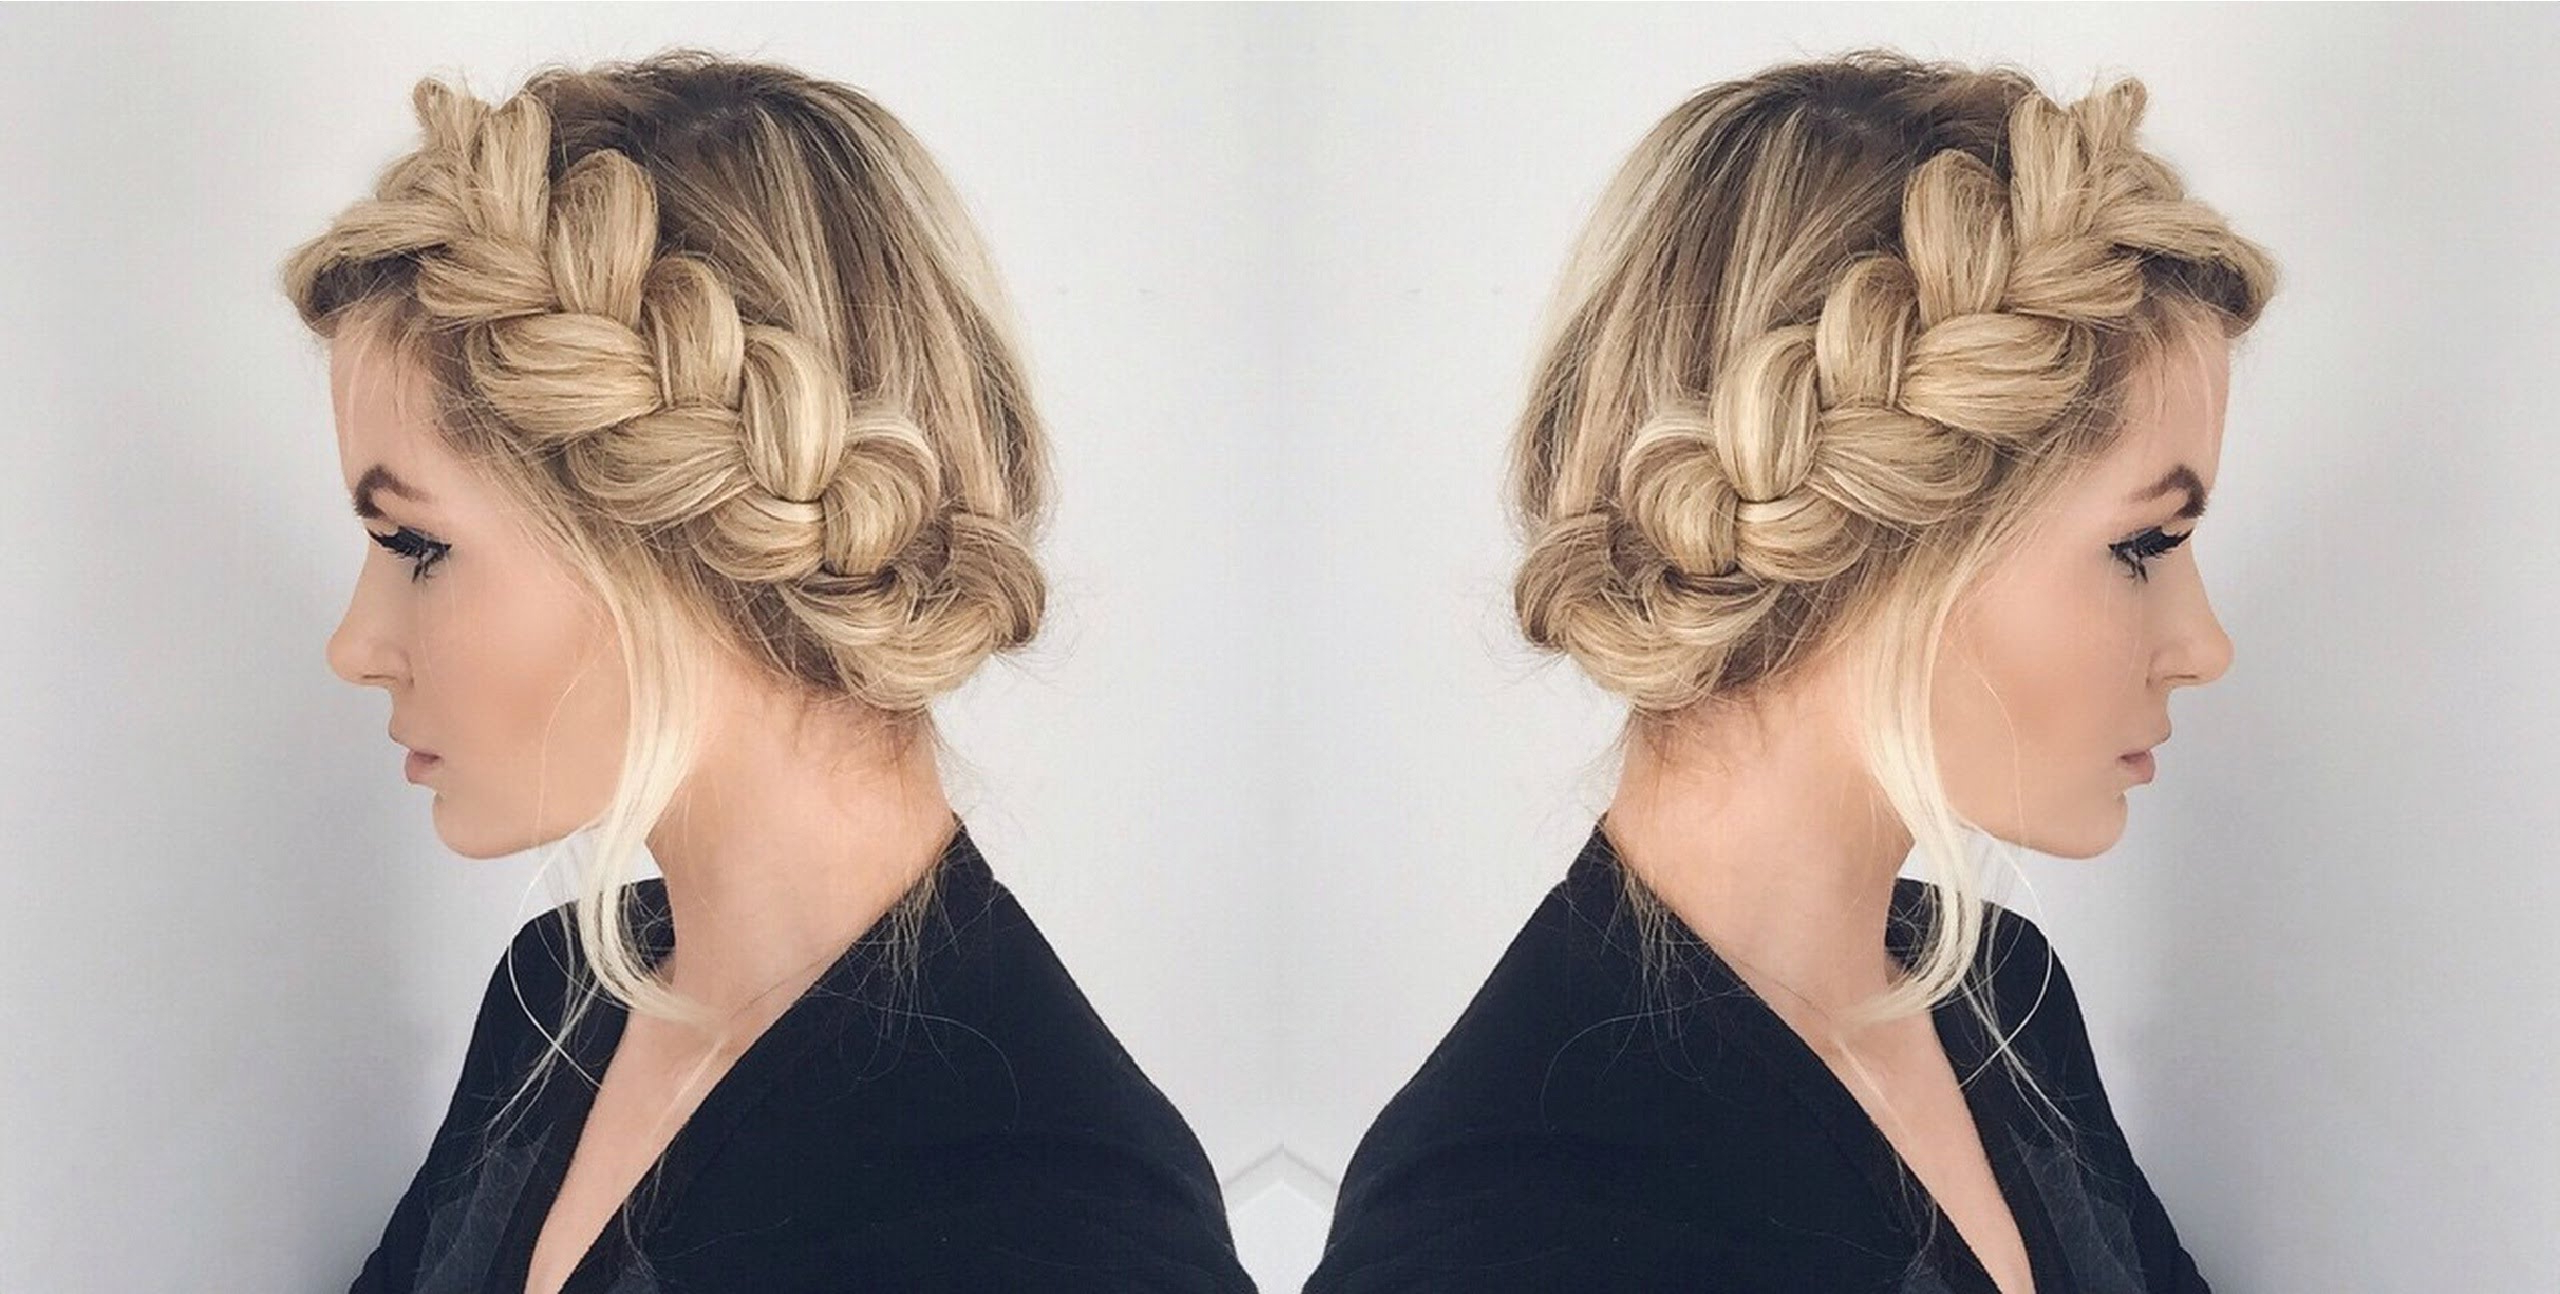 2019 Traditional Halo Braided Hairstyles With Flowers For Hairstylehub/wp Content/uploads/2016/12/40 Dif (View 17 of 20)